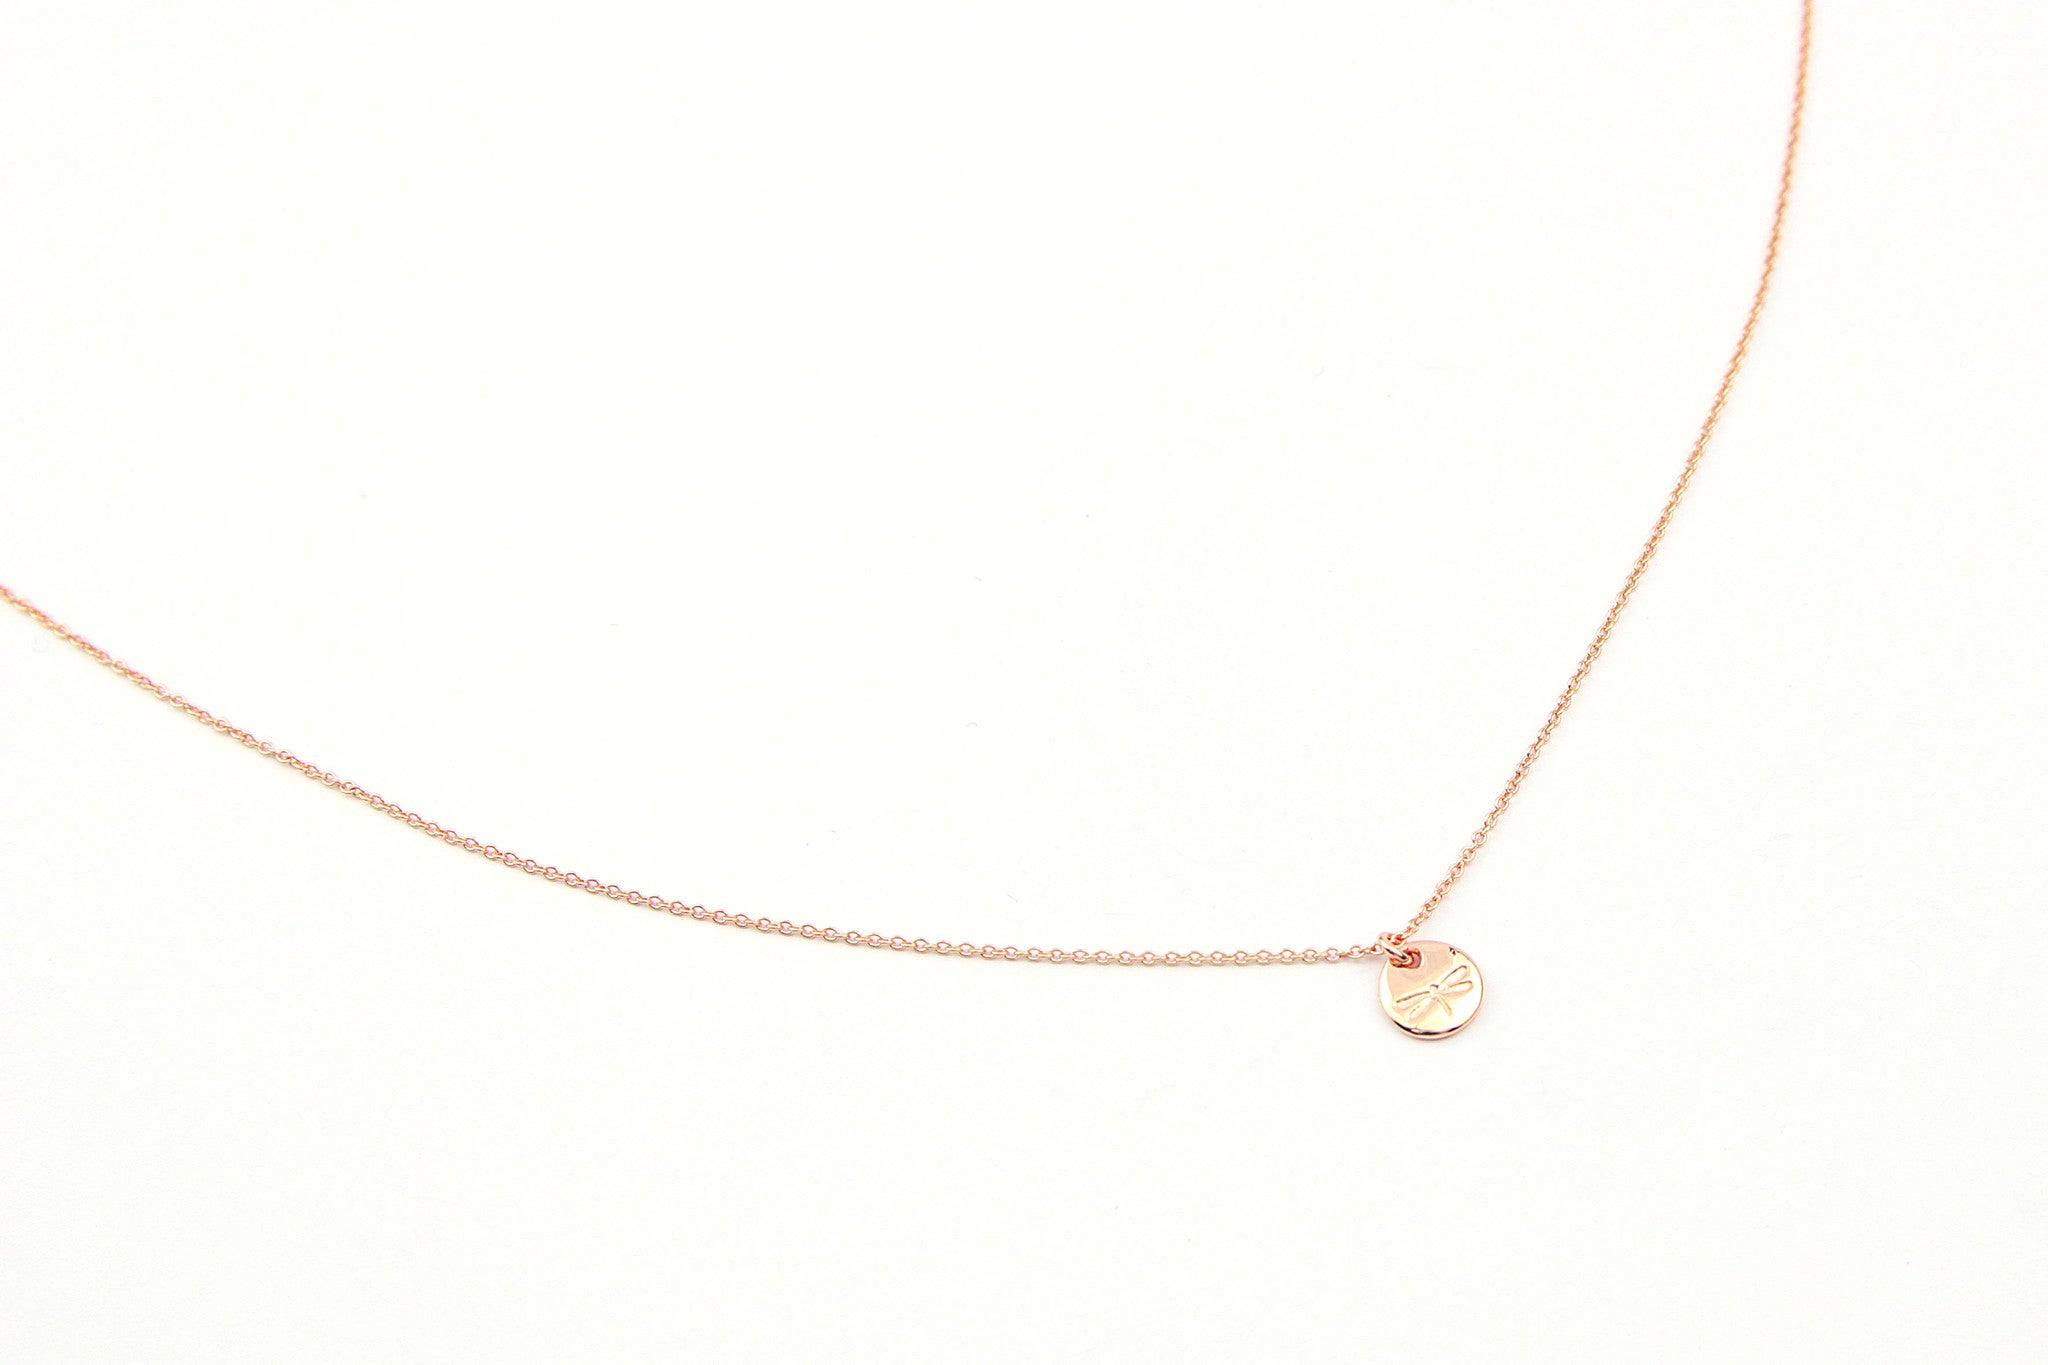 jewelberry necklace kette dragonfly token anchor chain rose gold plated sterling silver fine jewelry handmade with love fairtrade